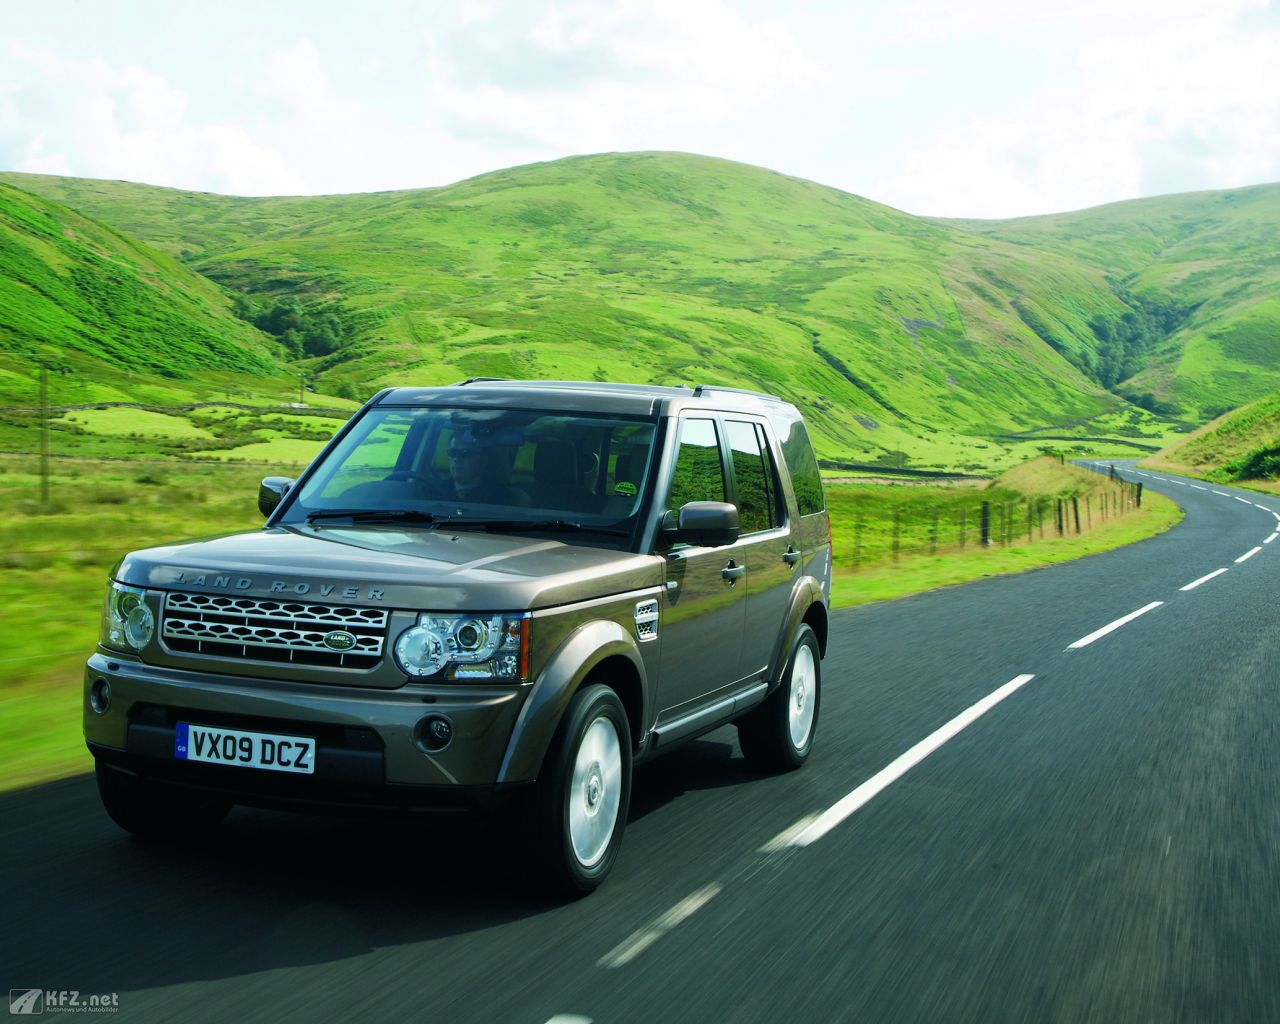 land-rover-discovery-1280x1024-7